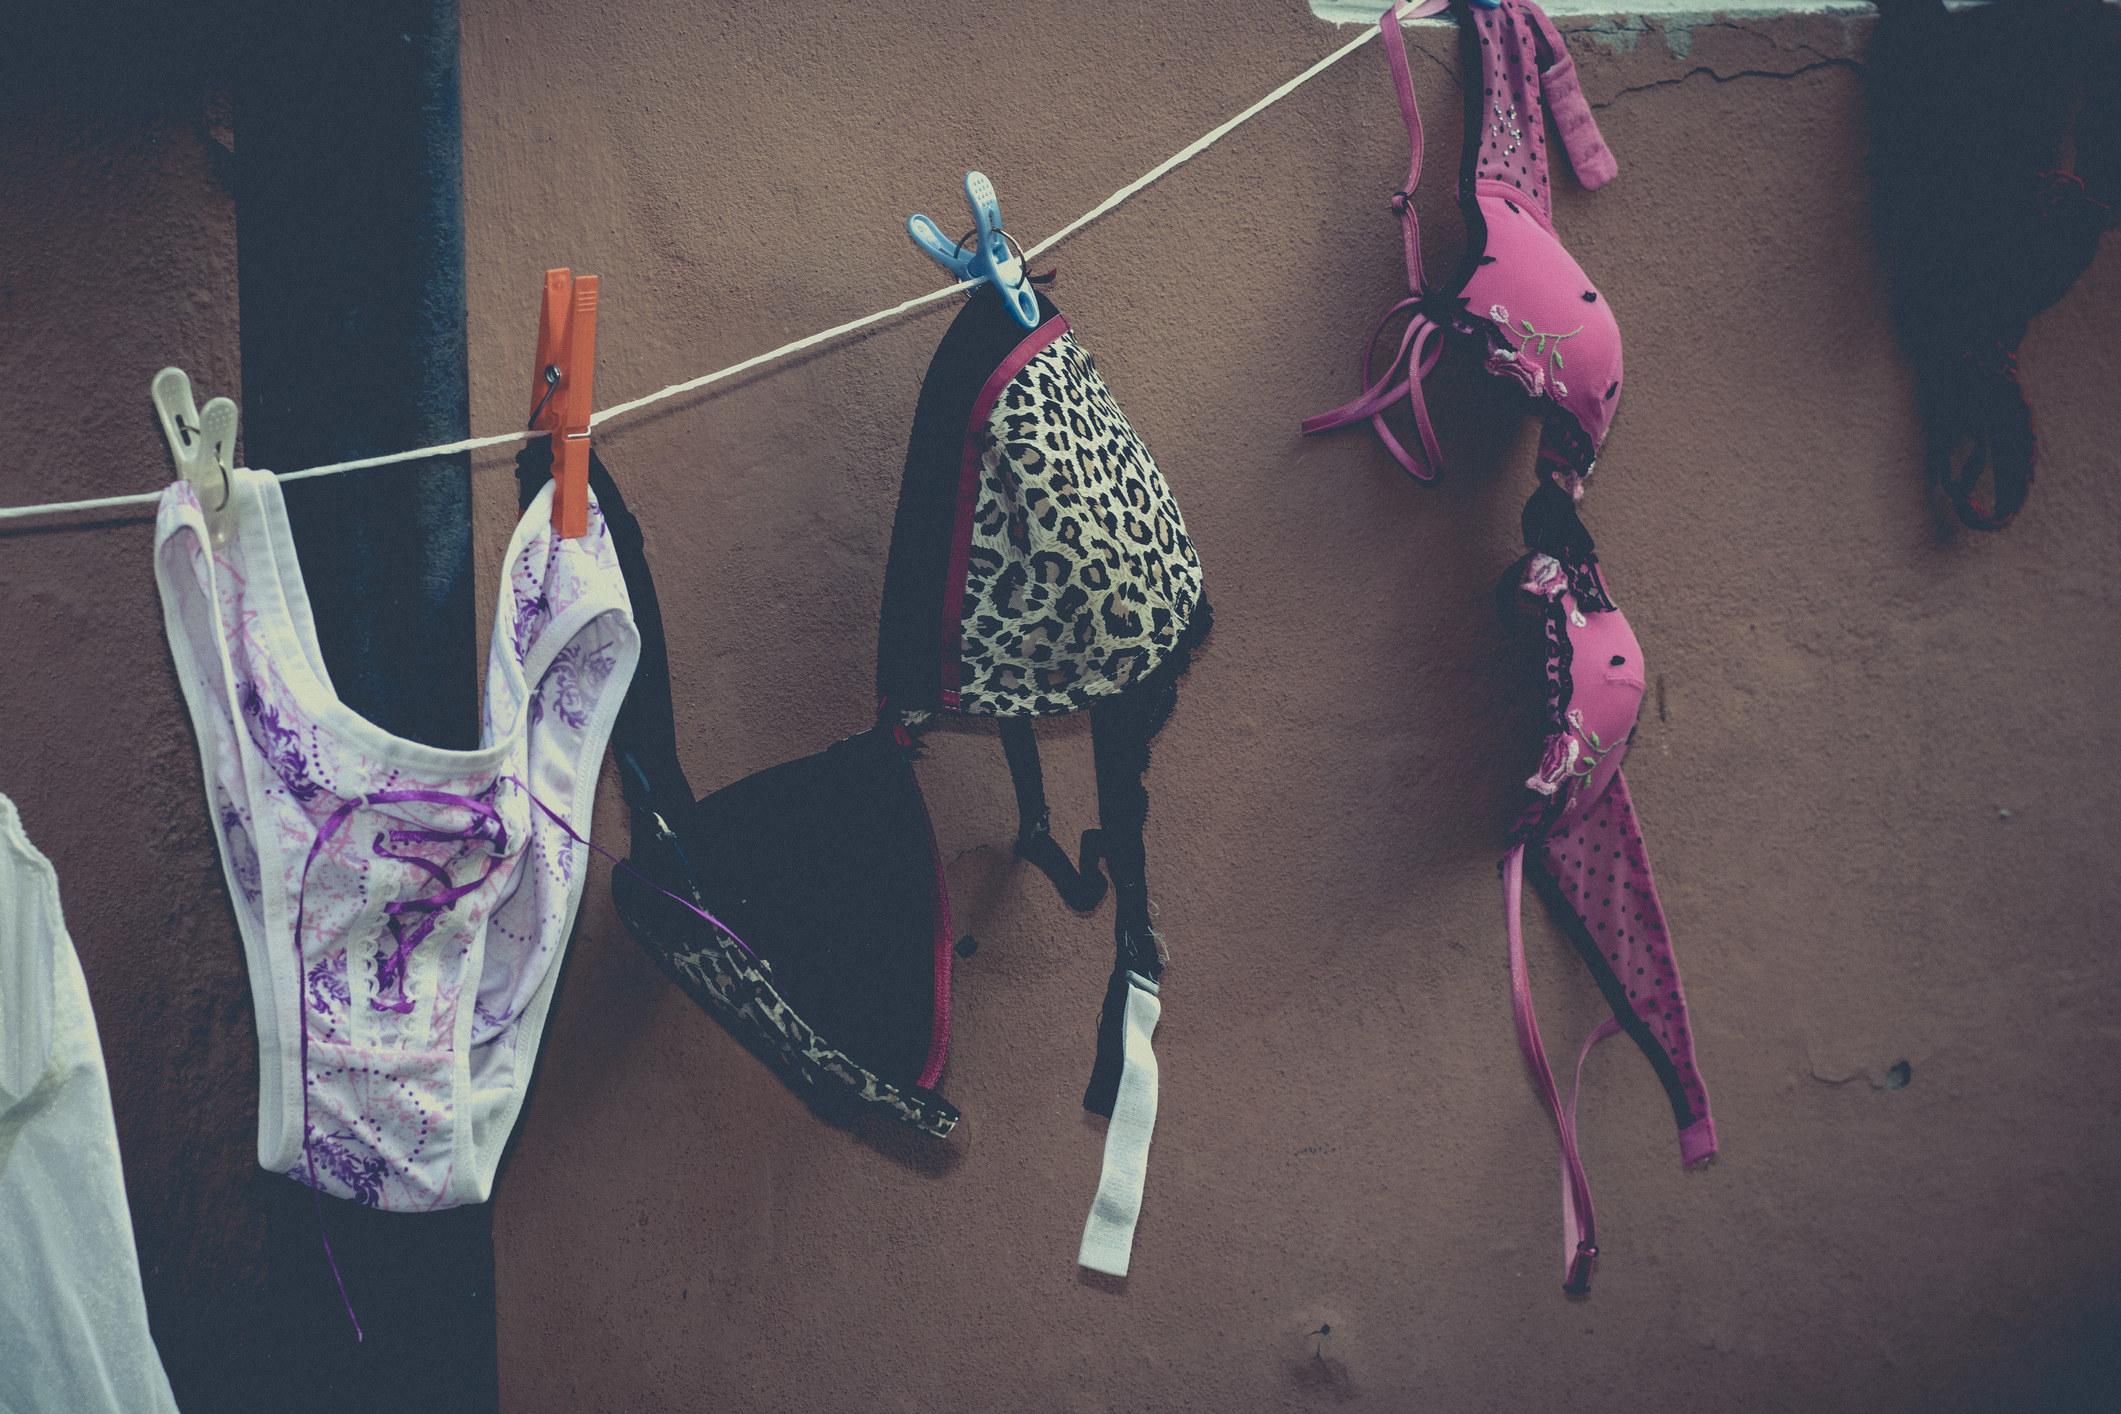 An image of lingerie hanging on a clothes line